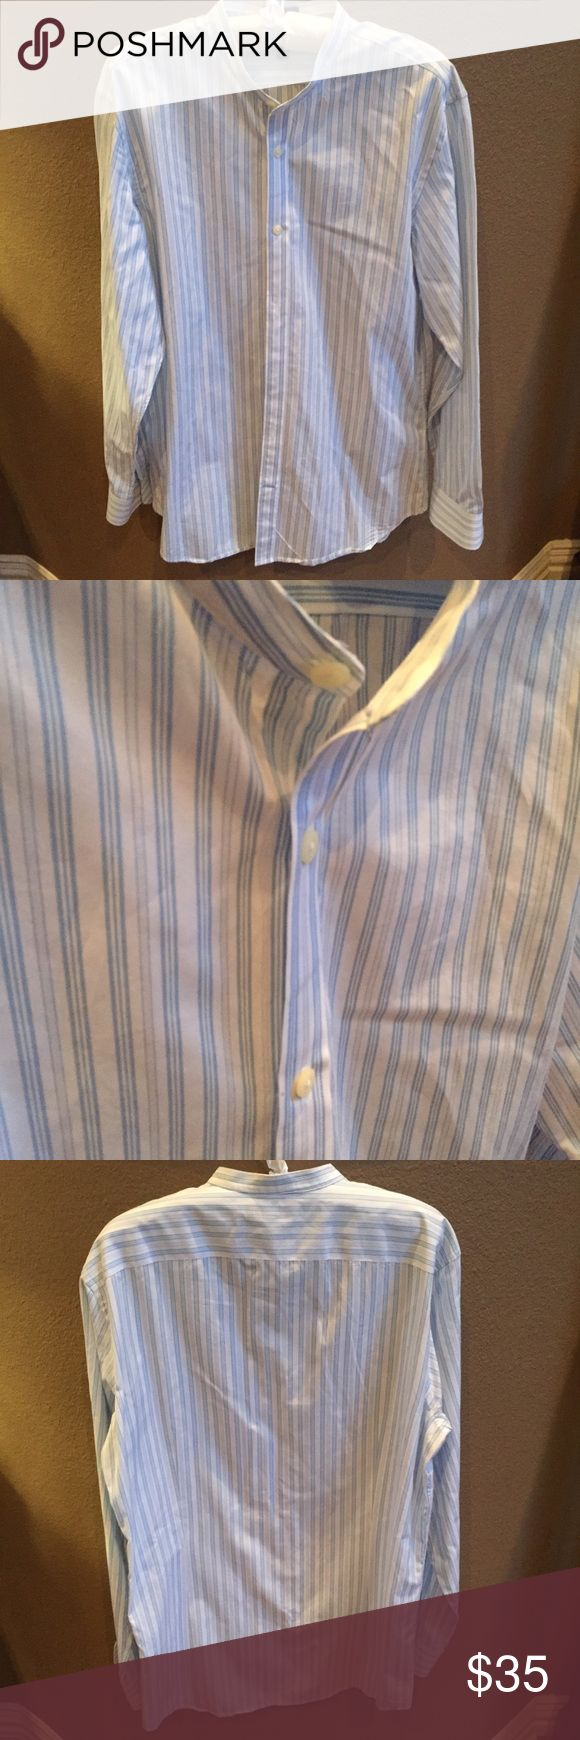 Banana Republic Grant Fit Banded Collar Shirt L Never worn like new condition Banana Republic Grant Fit Banded Collar Shirt in size Large. Banded collar. Clean front. Adjustable double-button barrel cuffs. Seams, armhole and collar are specially treated to stay smooth. Buttons are securely cross-stitched. Interlined collar has a crisper finish. Triangular gusset at side seams adds durability.  Item is from a pet and smoke free home.  P30 Banana Republic Shirts Dress Shirts